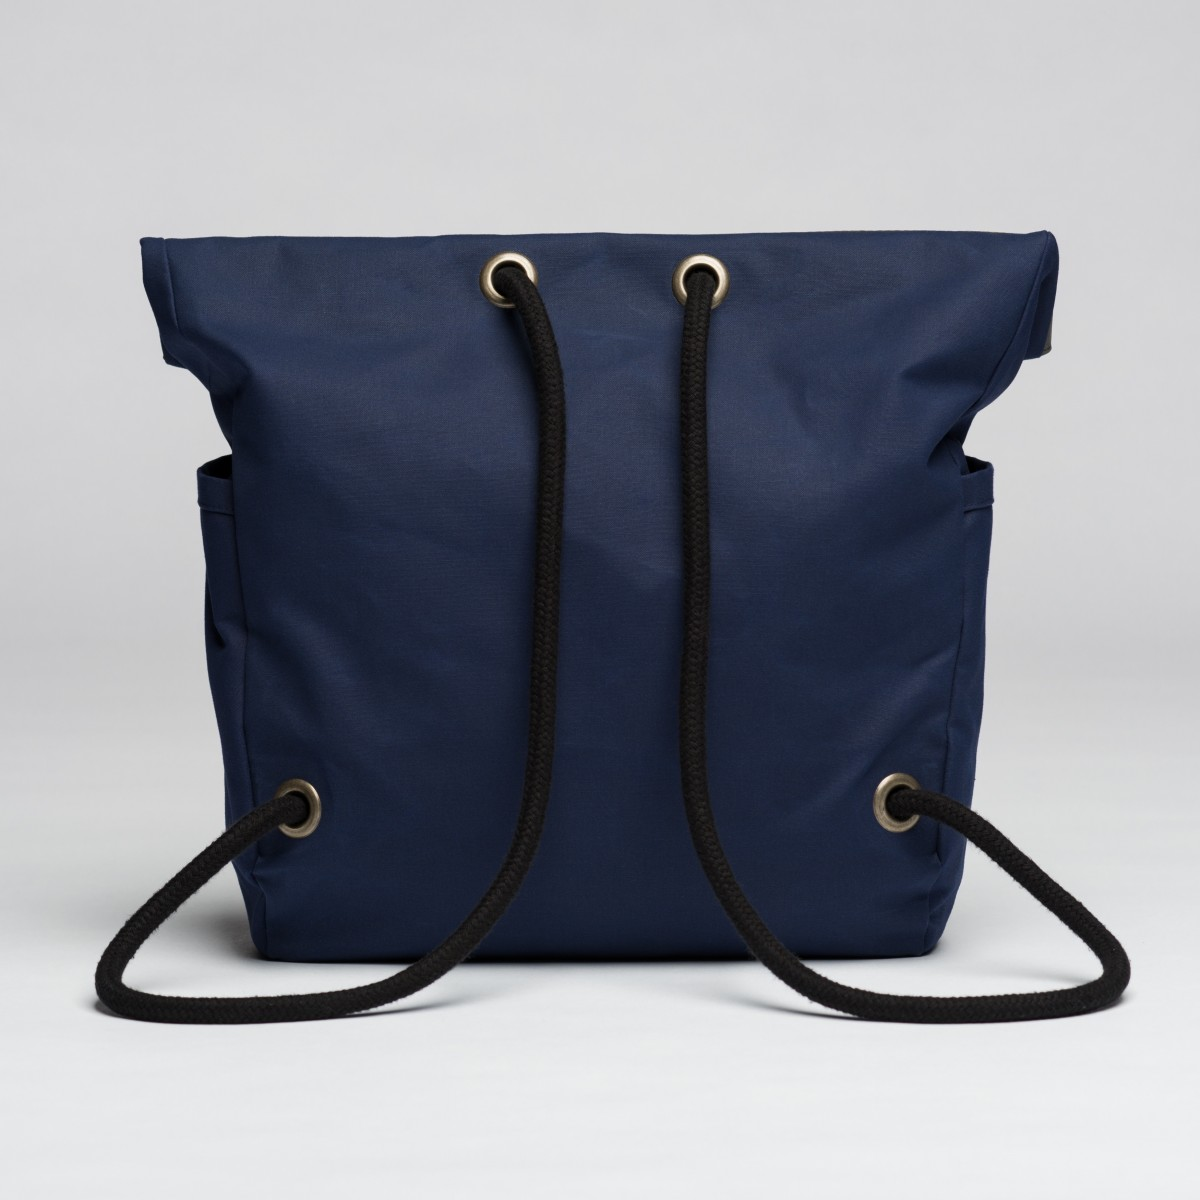 VANOOK Dual Backpack Navy / Charcoal